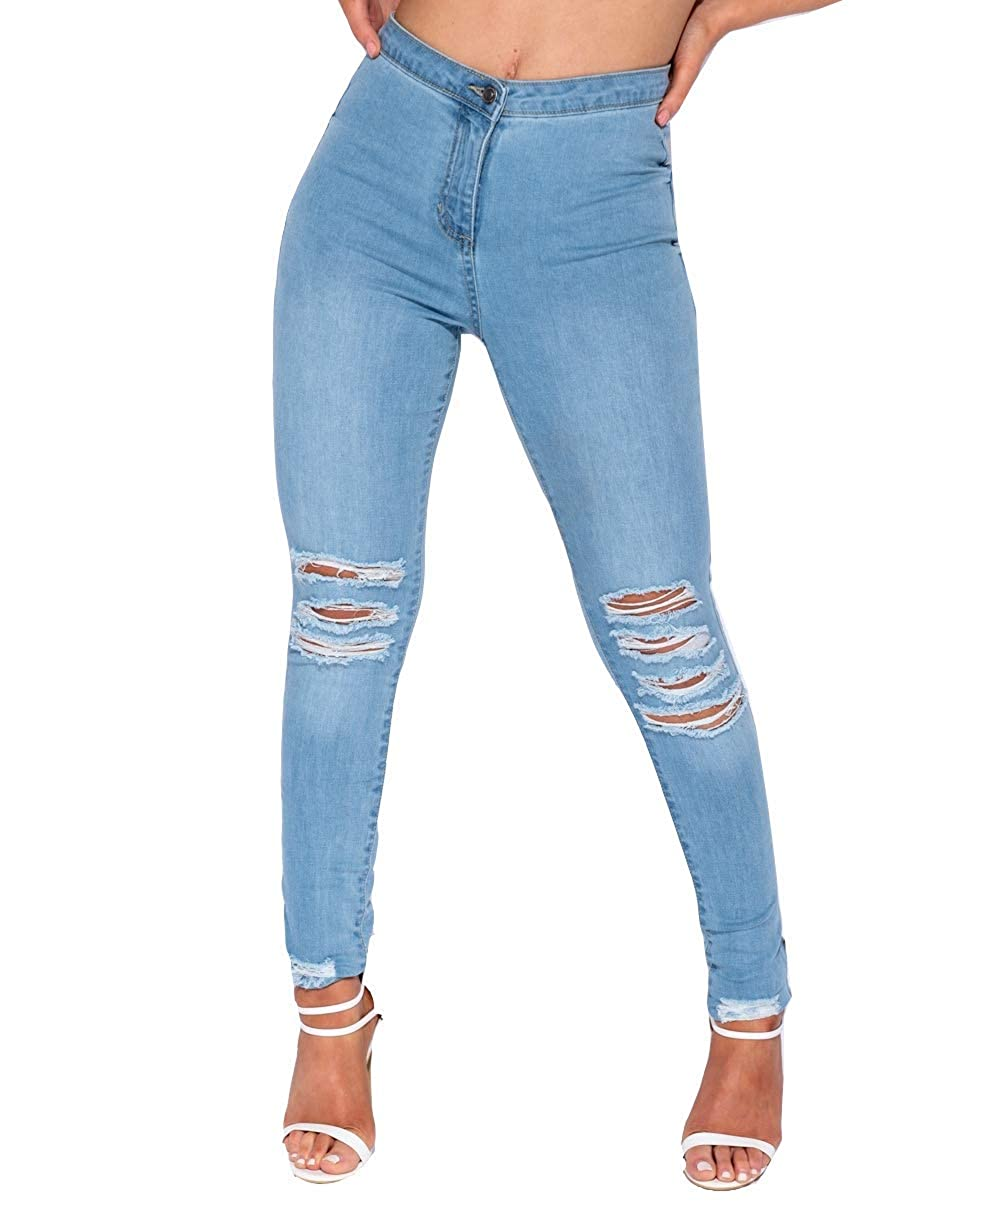 8f81fdd009cf4 Parisian Women's Ripped Skinny Jeans - Light Blue High Waisted Super Soft  Rip Knee Jeans (10, Blue): Amazon.co.uk: Clothing